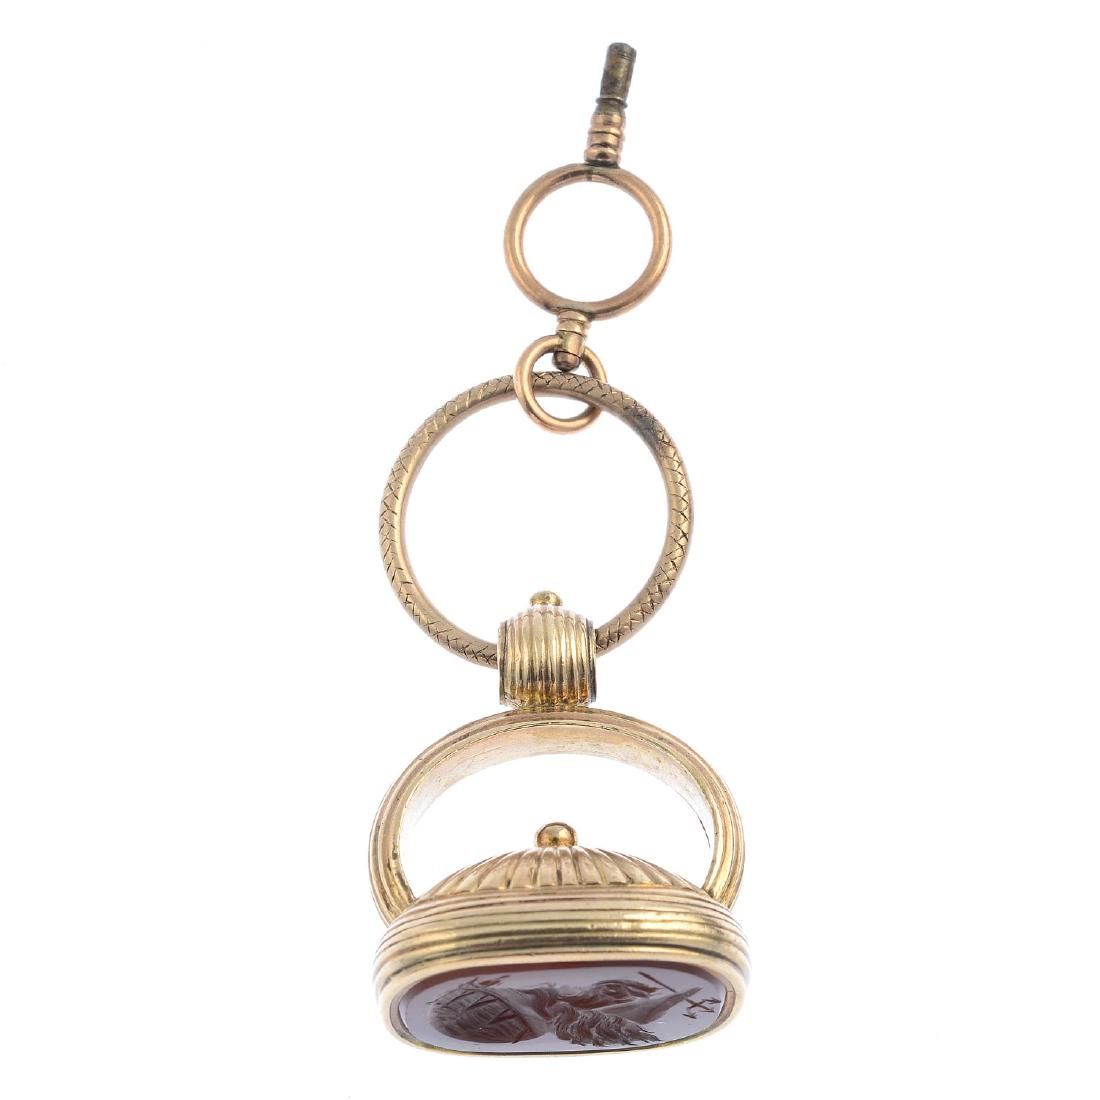 A late Victorian gold carnelian intaglio fob and watch